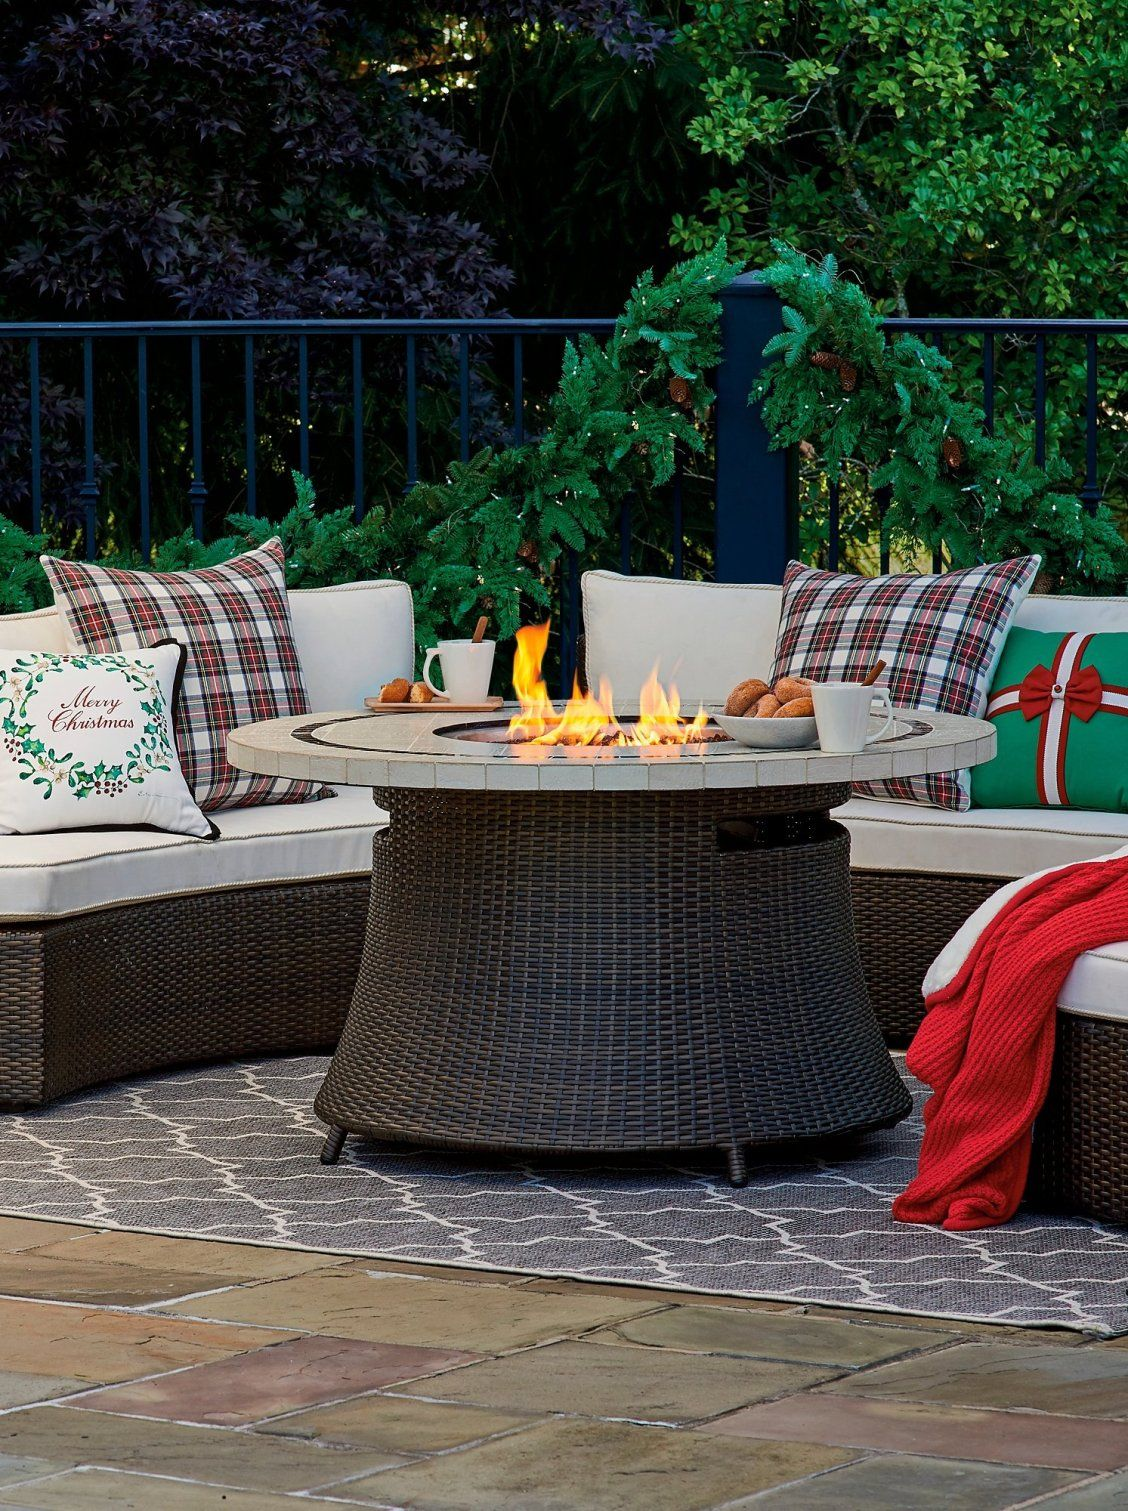 Friends and family will enjoy spending hours around our beautiful pasadena stone top fire table